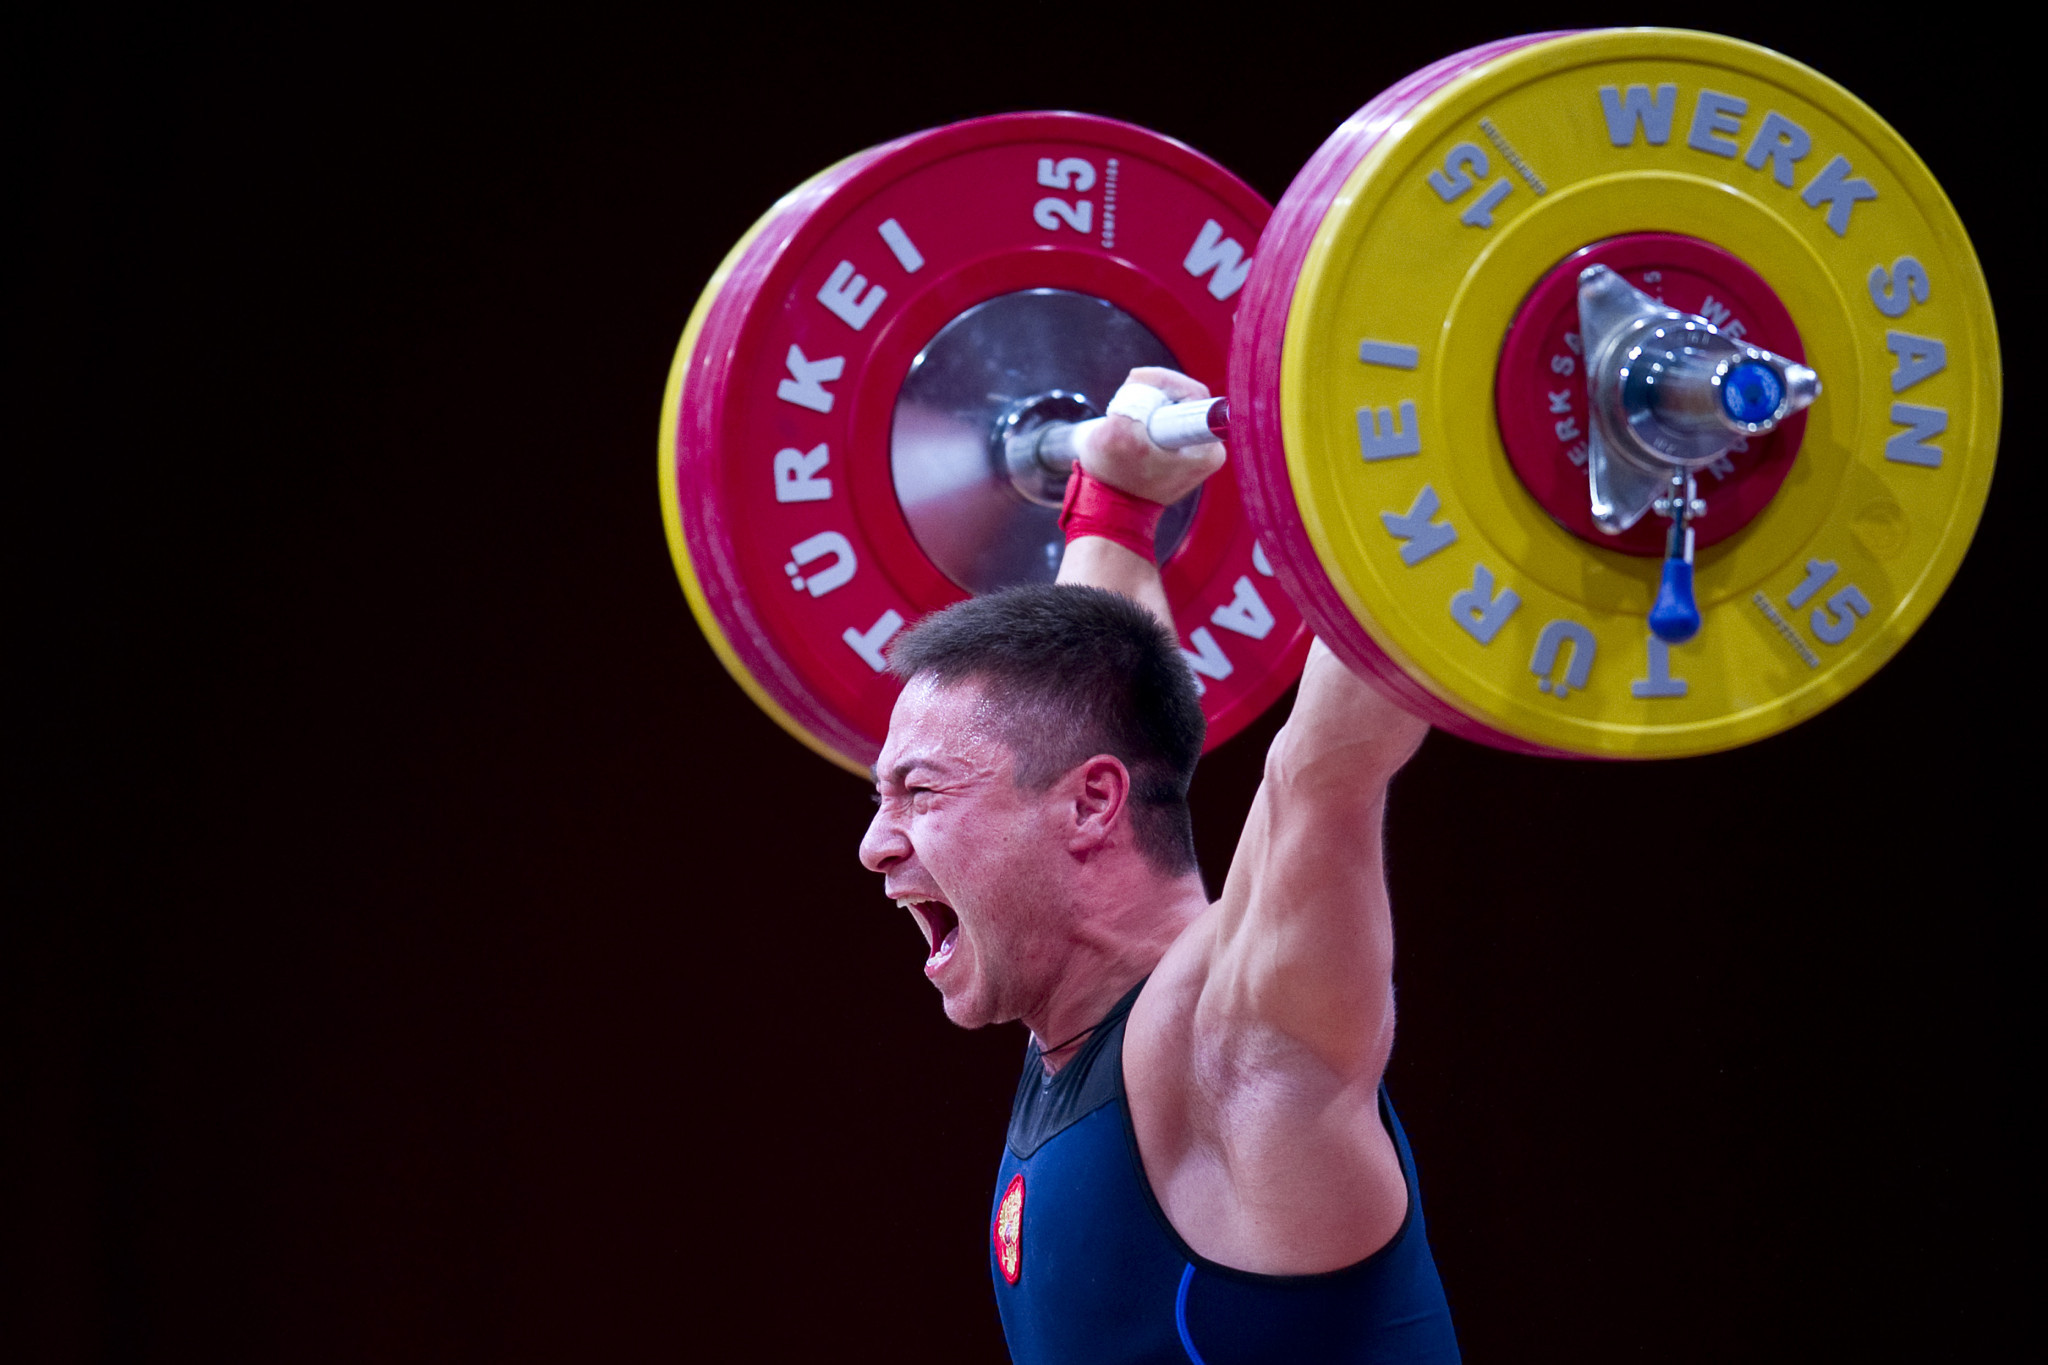 Oleg Chen has also been provisionally suspended by the IWF ©Getty Images